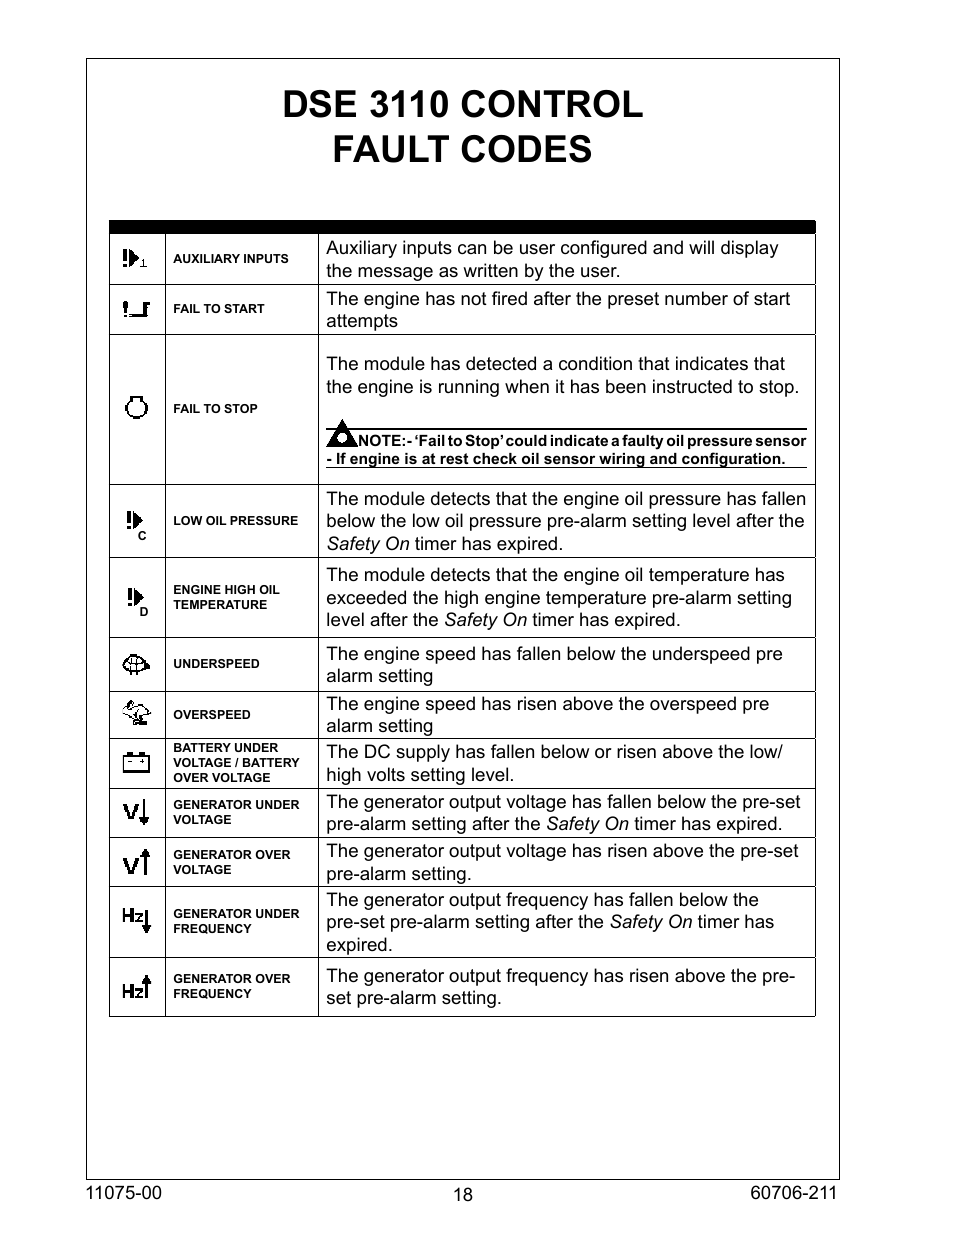 Dse 3110 control fault codes | Winco ULPSS8B2W/E User Manual | Page